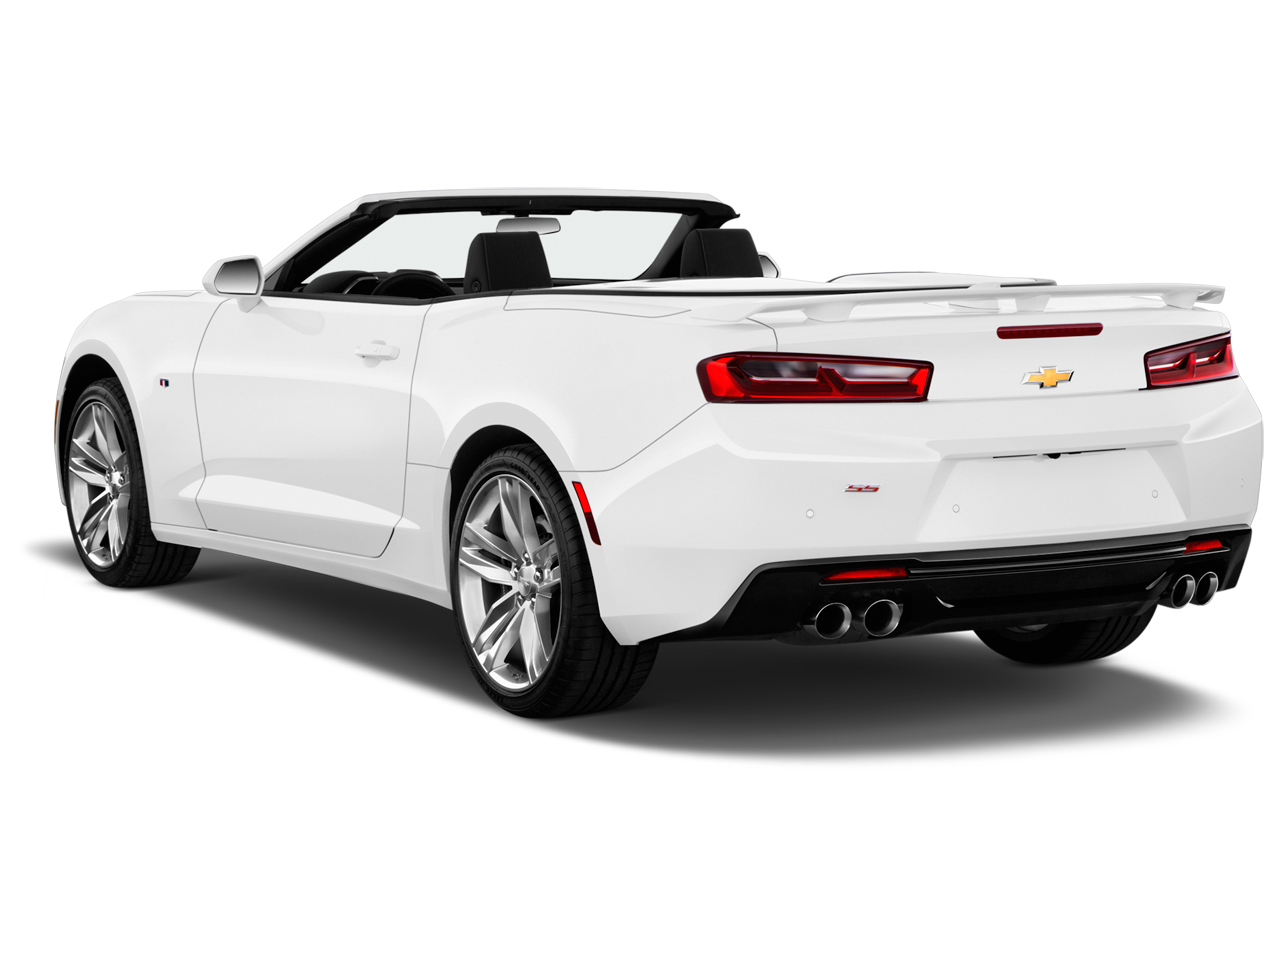 Car Features List For Chevrolet Camaro Convertible 2018 6